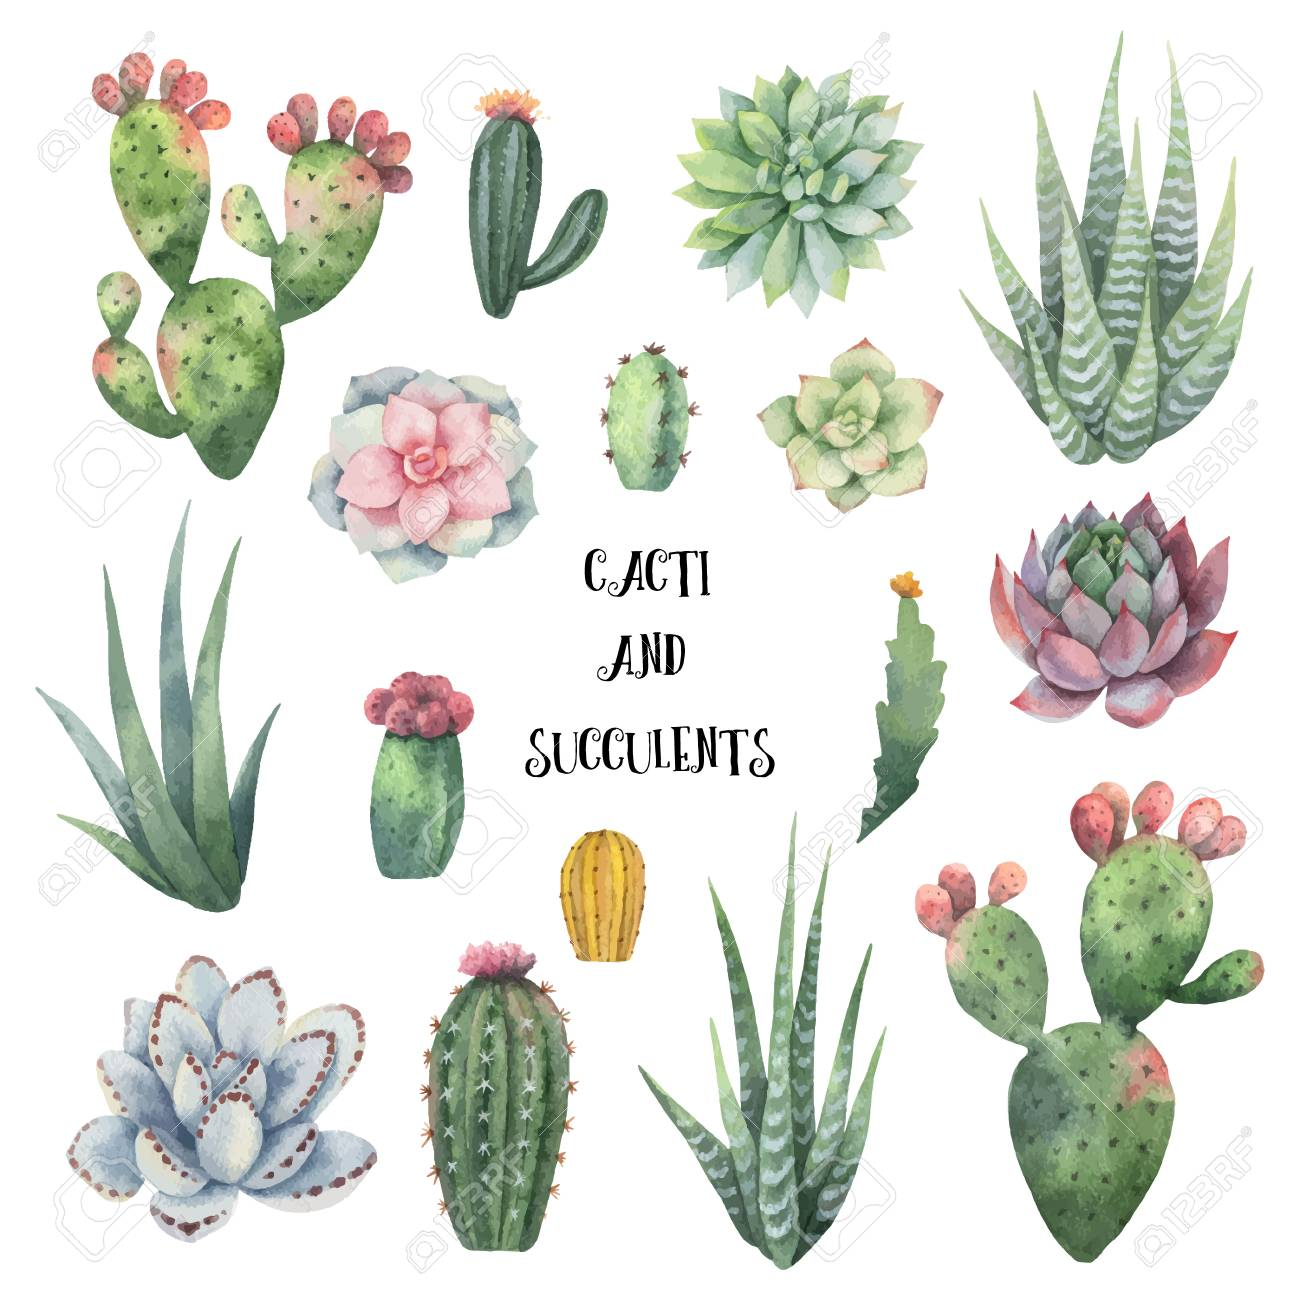 Watercolor vector set of cacti and succulent plants isolated on white background. - 100892486